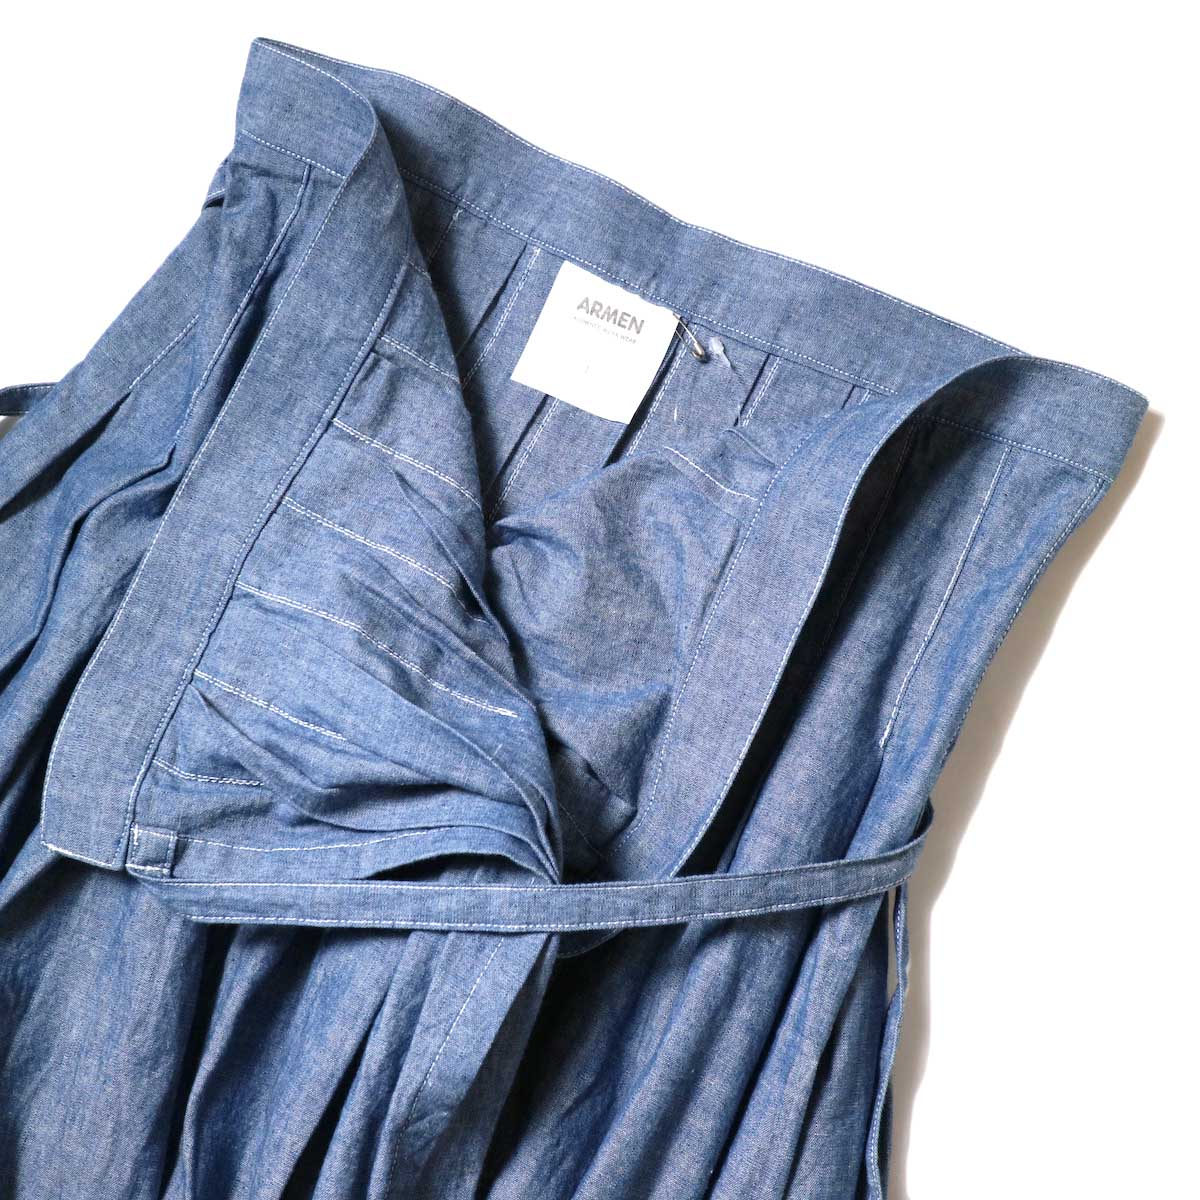 ARMEN / Pleated Wrap Skirt (Blue Chambray) ウエストアップ②